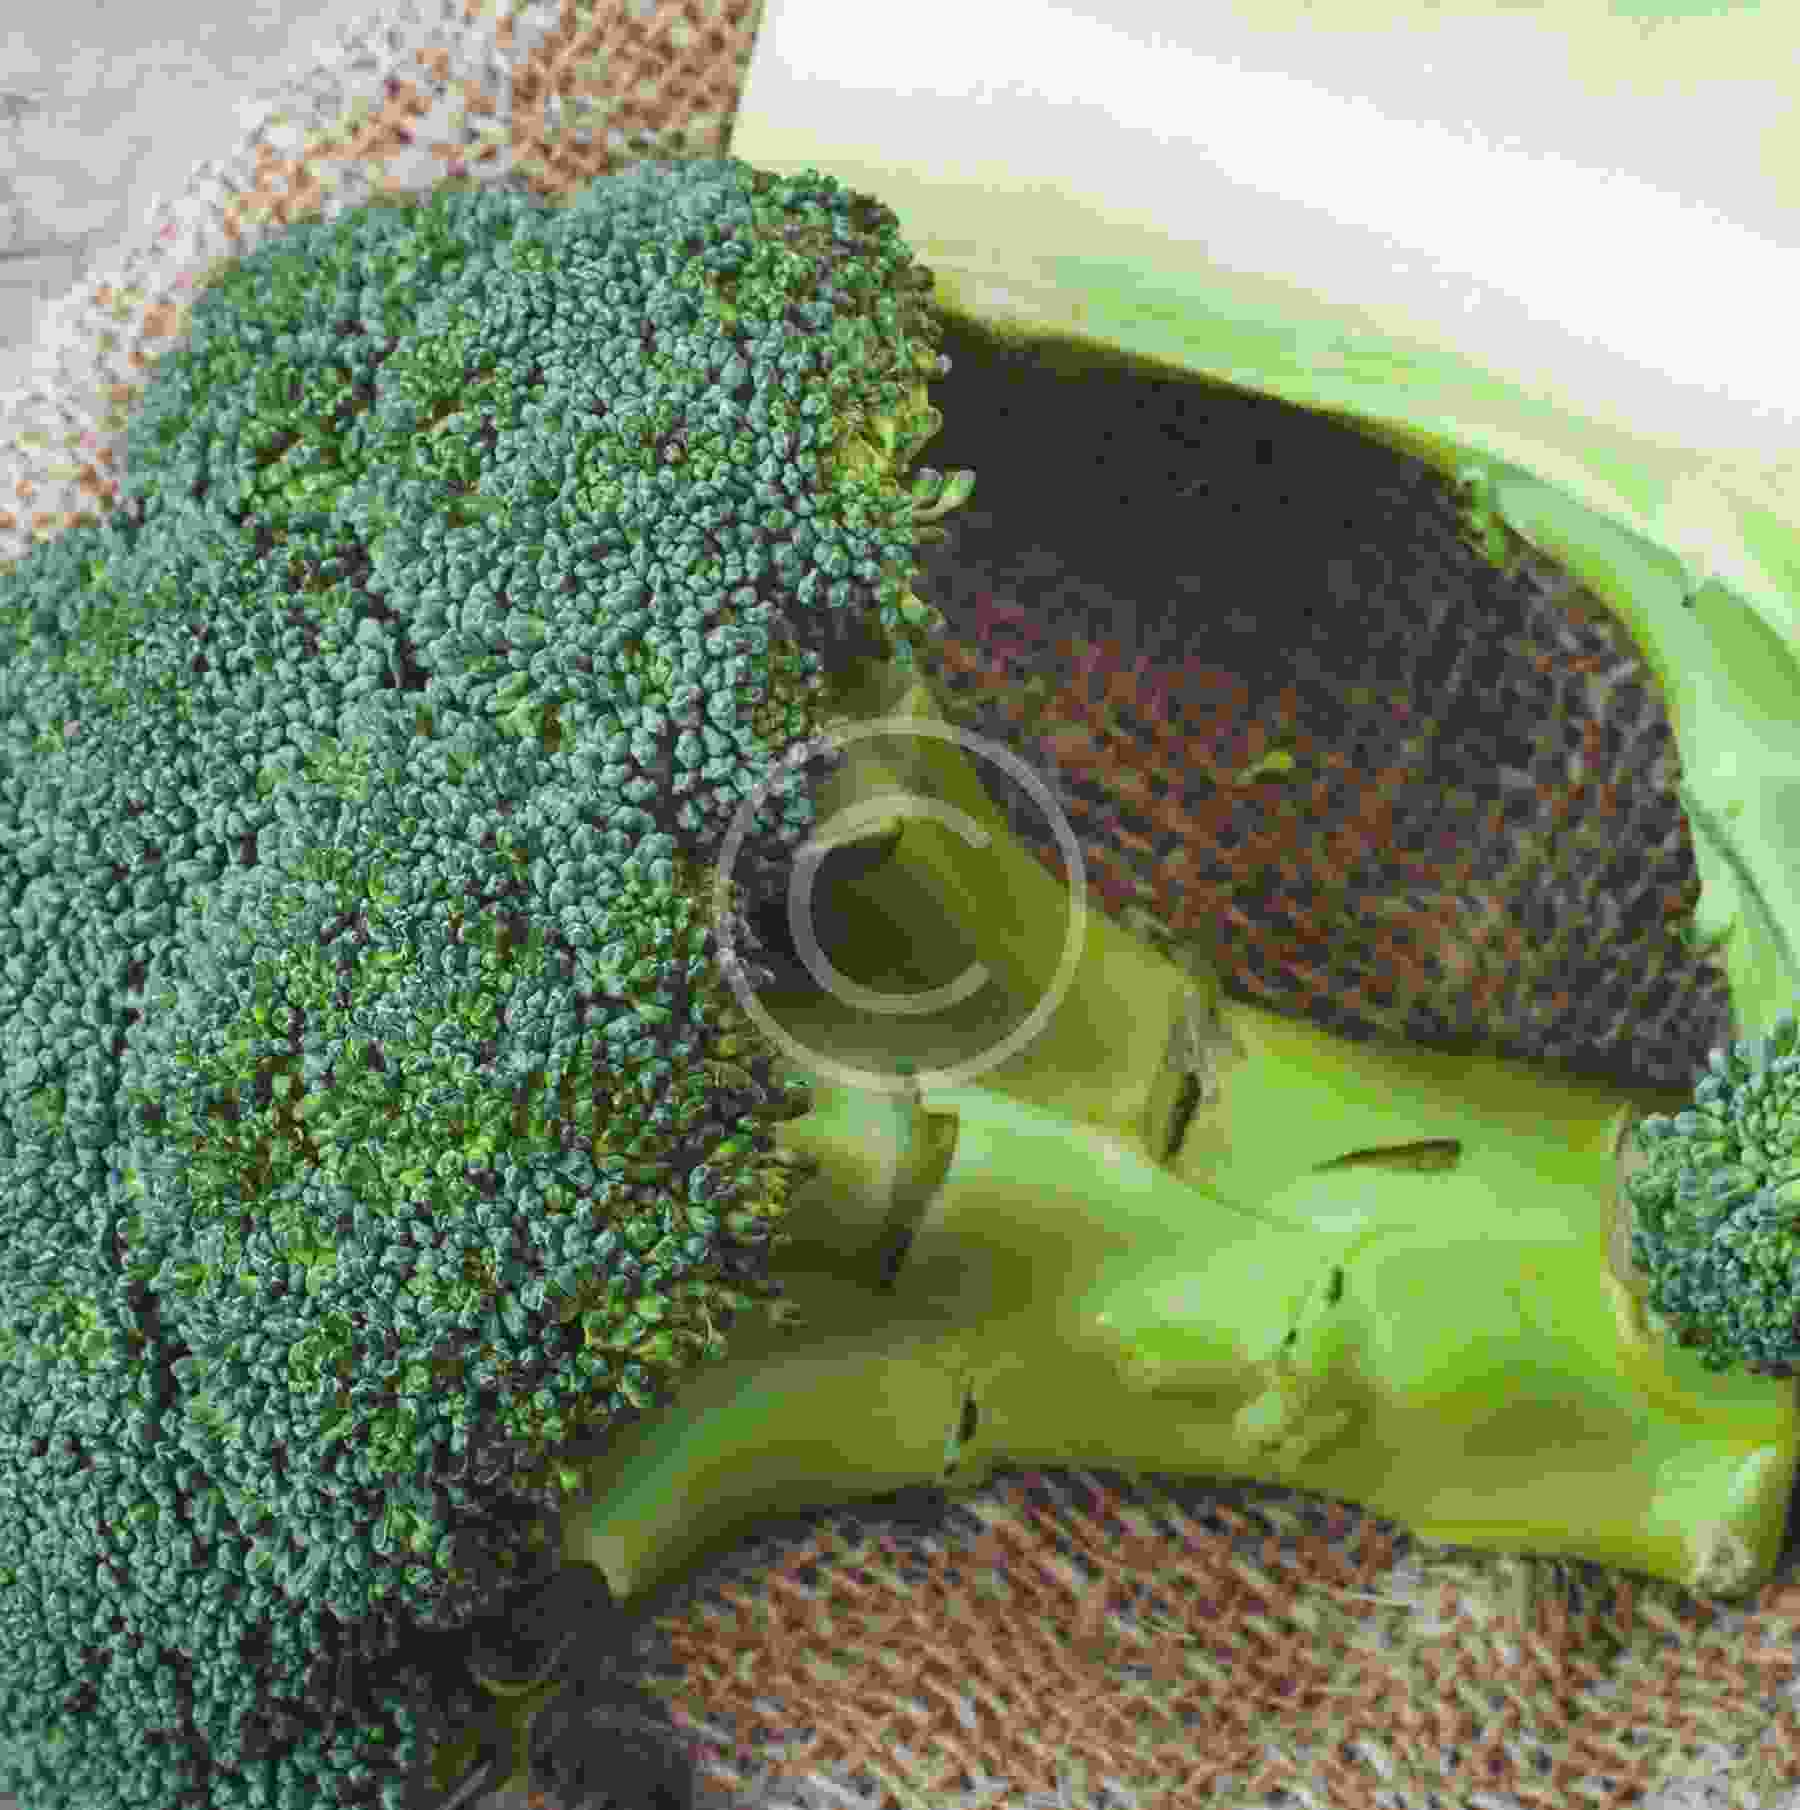 Broccoli is king, no matter what the weather is